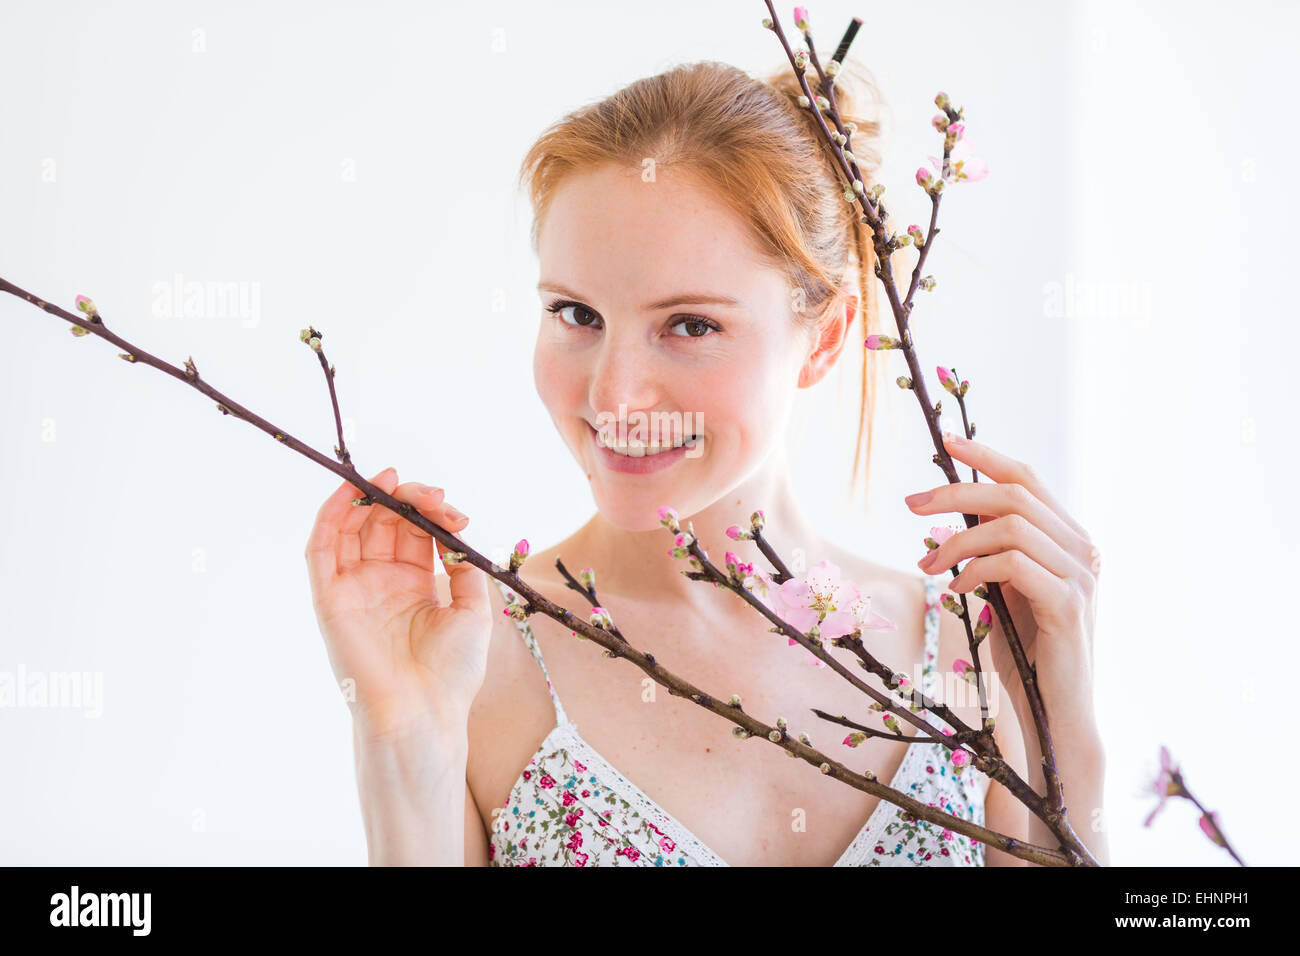 Woman in front of a blooning Prunus branch . - Stock Image